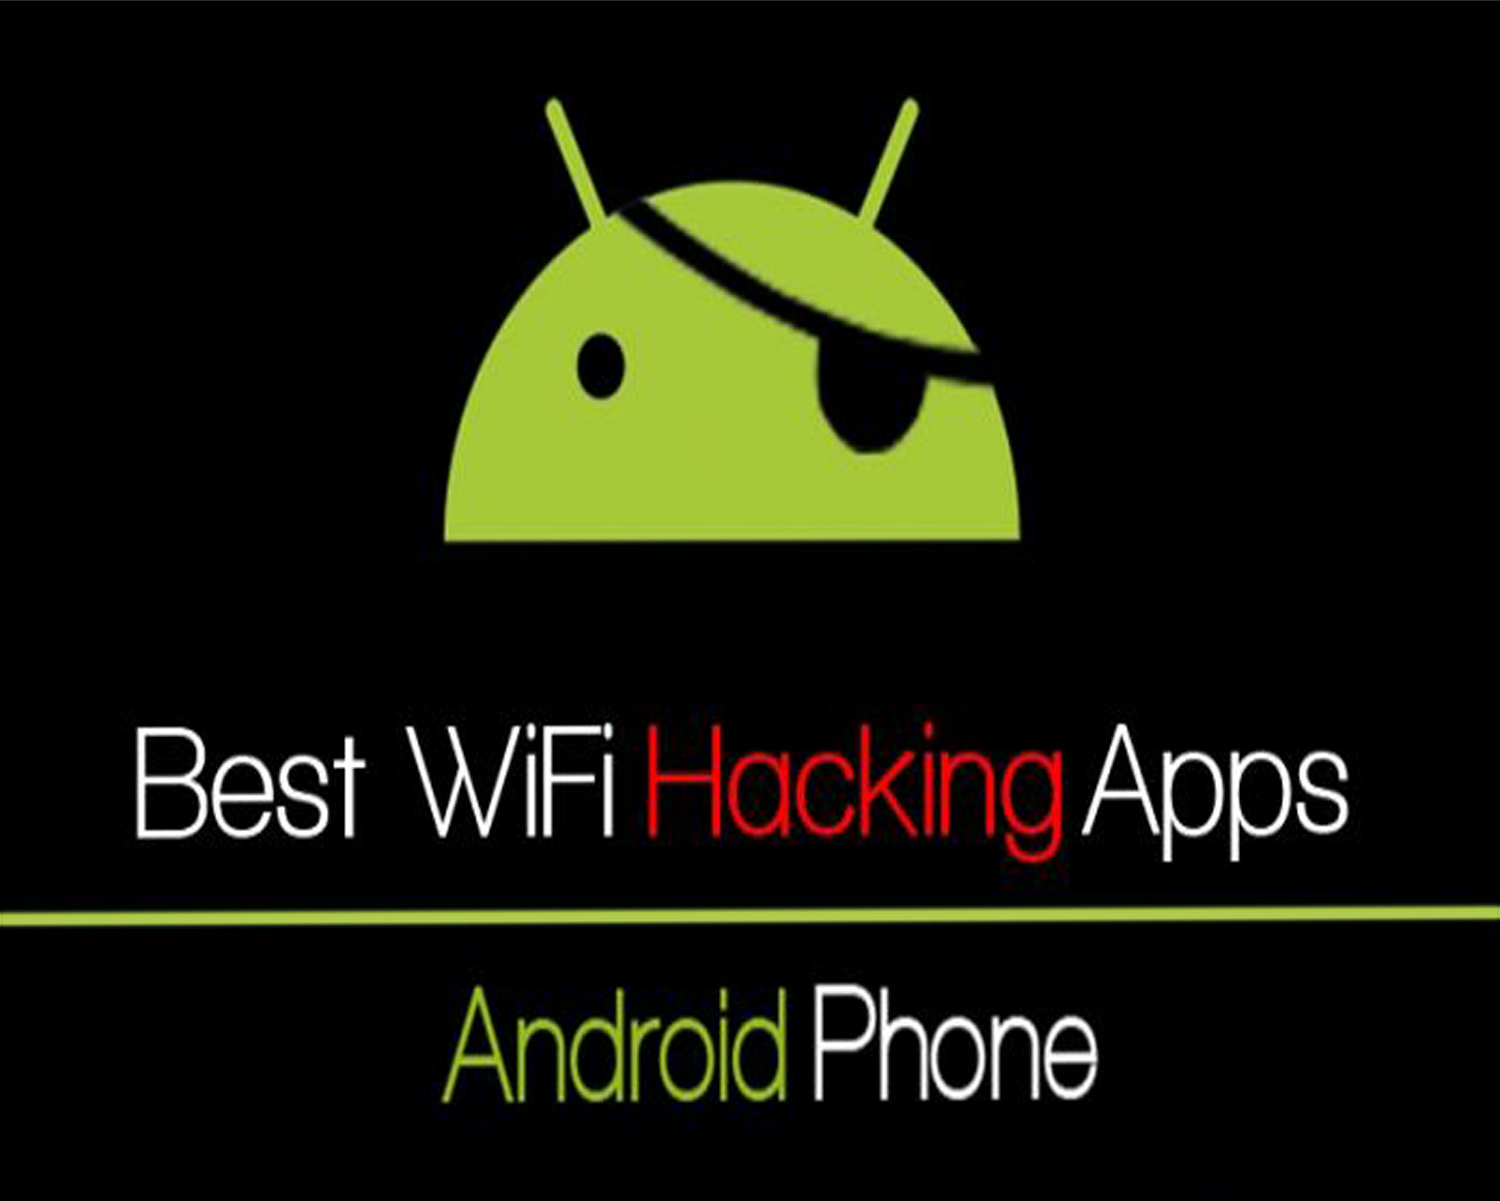 How To Hack WiFi Network From your Android phone? - Rößïñ